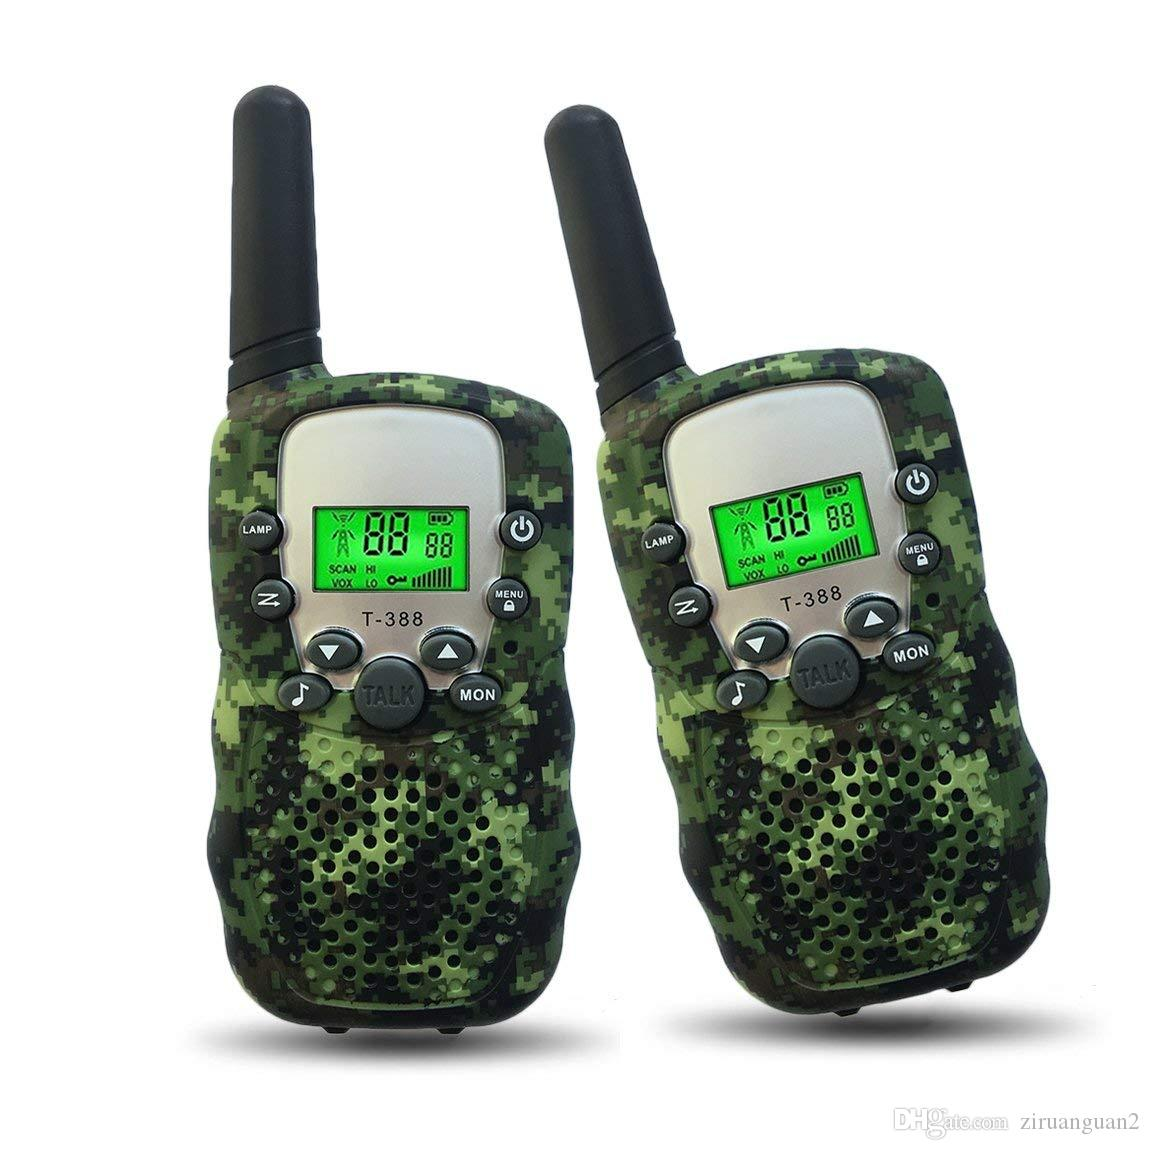 2019 Toys For Kids 5 10 Year Old Joyfun Walkie Talkies Boys Long Distance Teens Hiking Christmas Birthday Gifts 6 7 8 O From